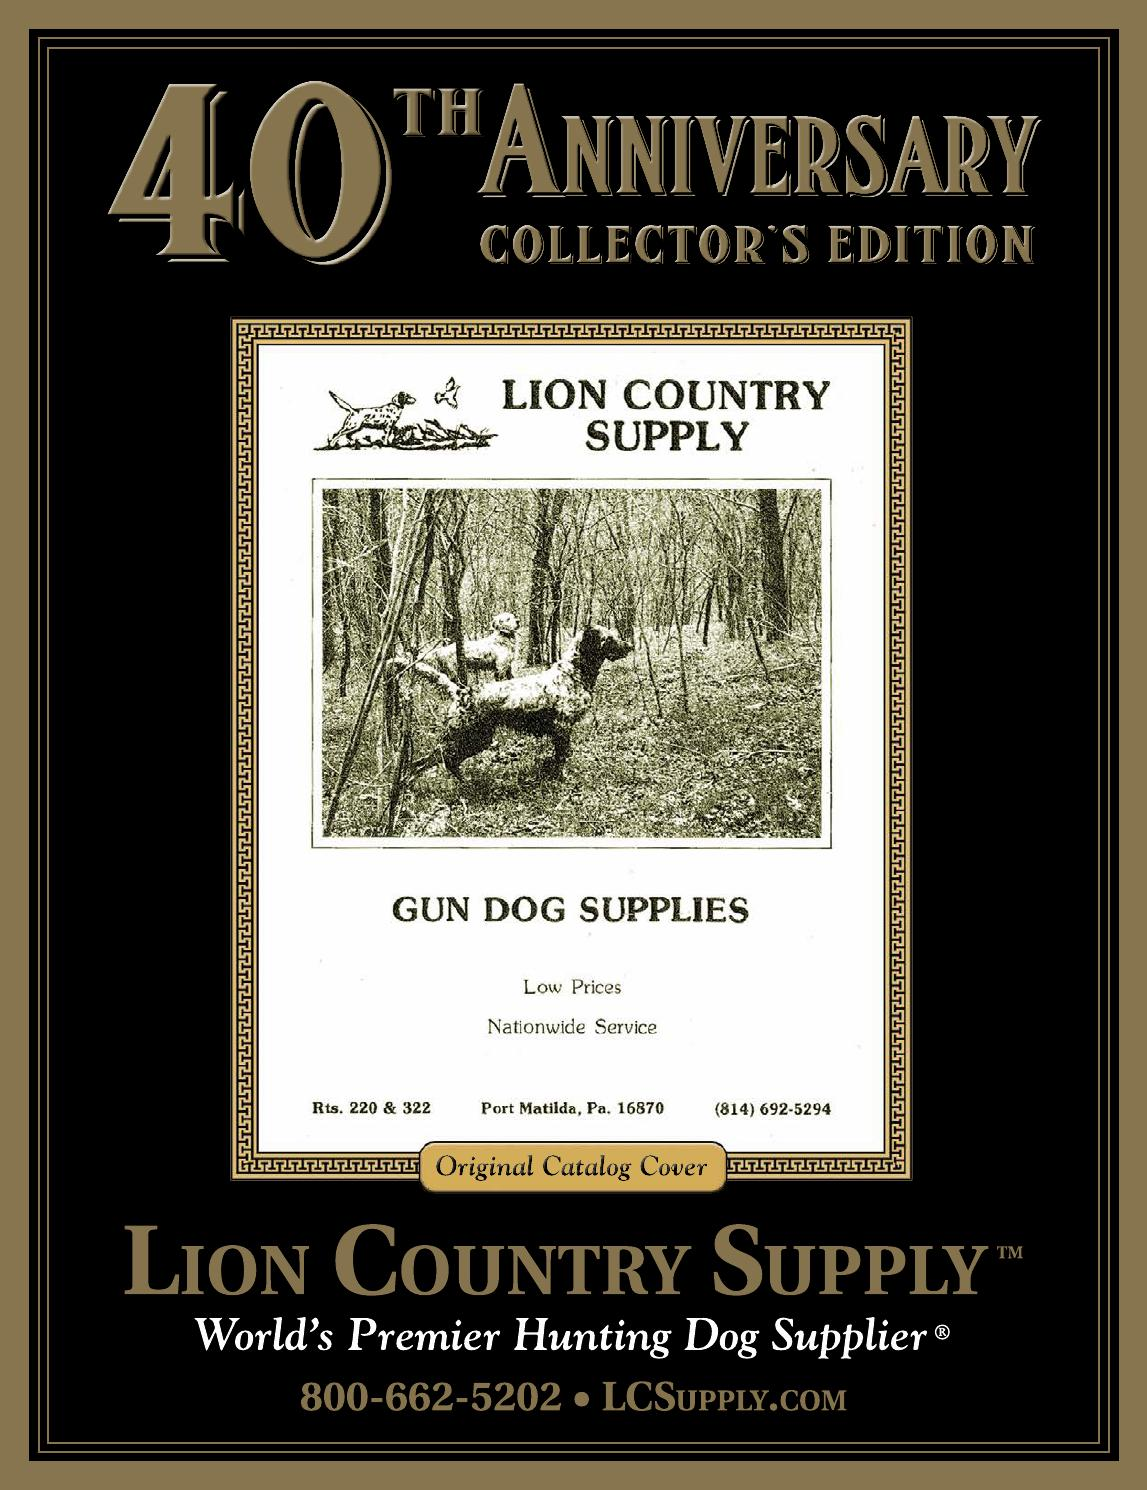 Lion country supply fall winter 2014 40th anniversary for Gardeners supply company catalog